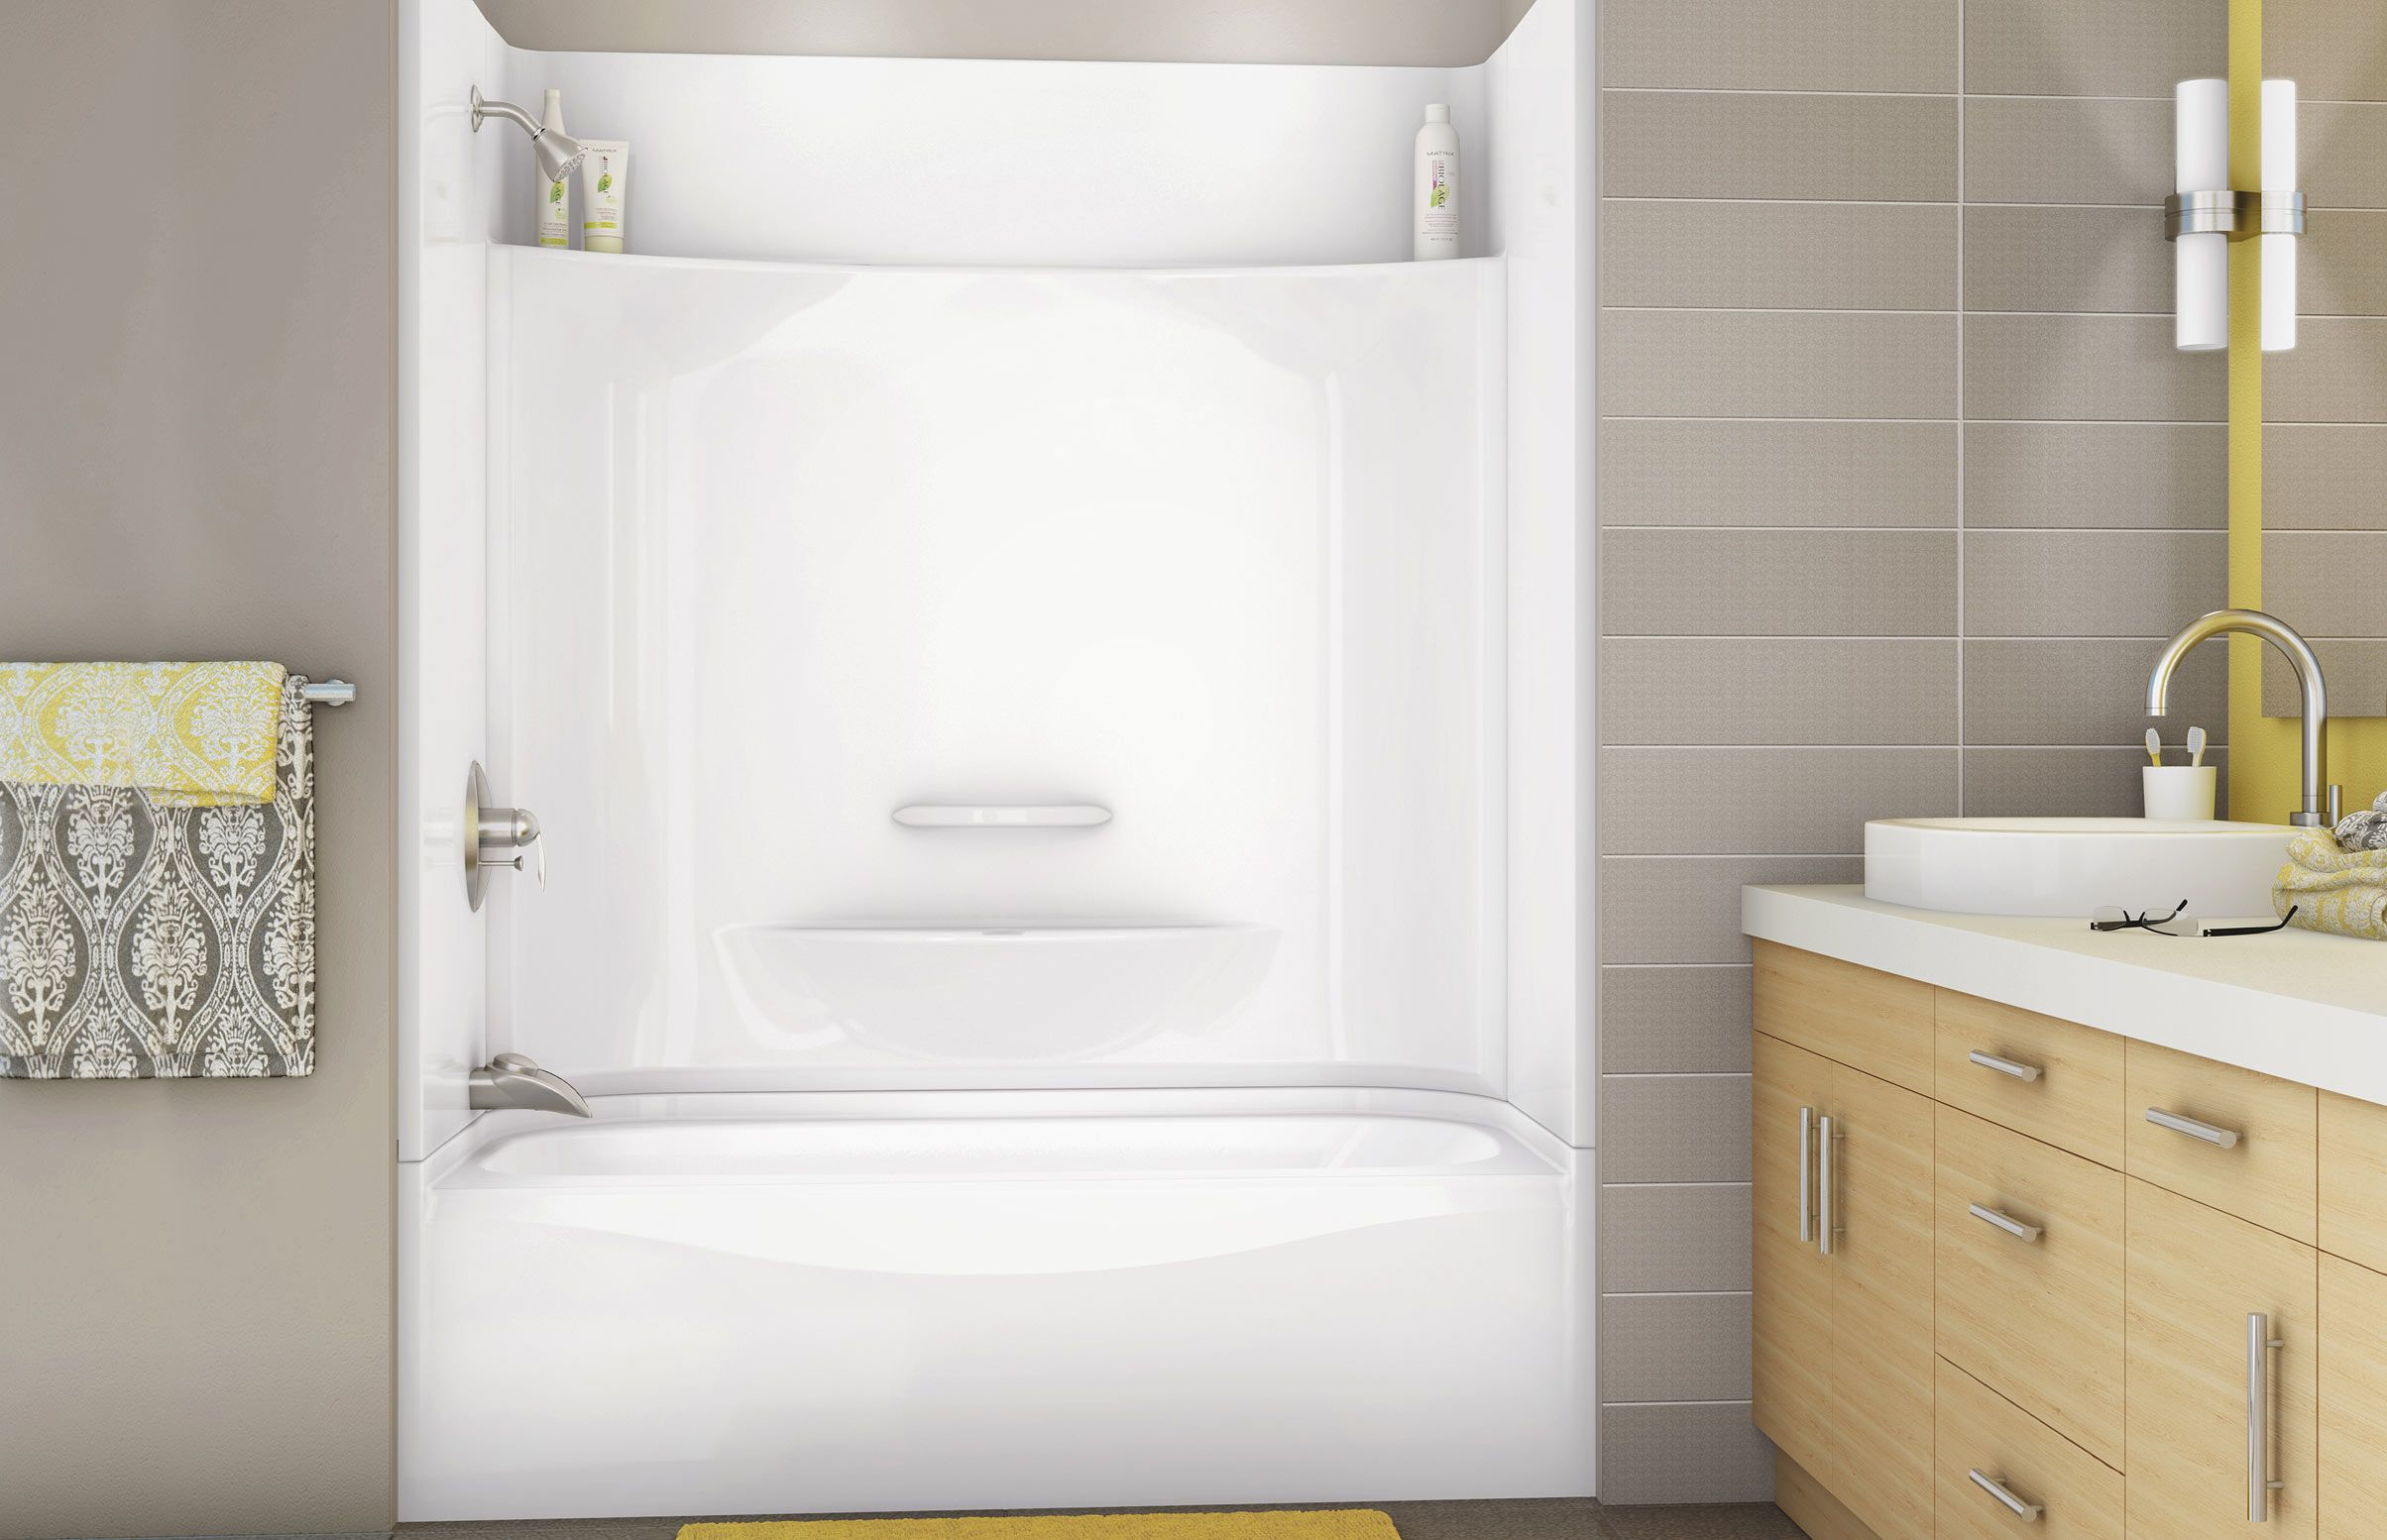 KDTS 3060 Alcove or Tub showers bathtub - MAAX Professional ...